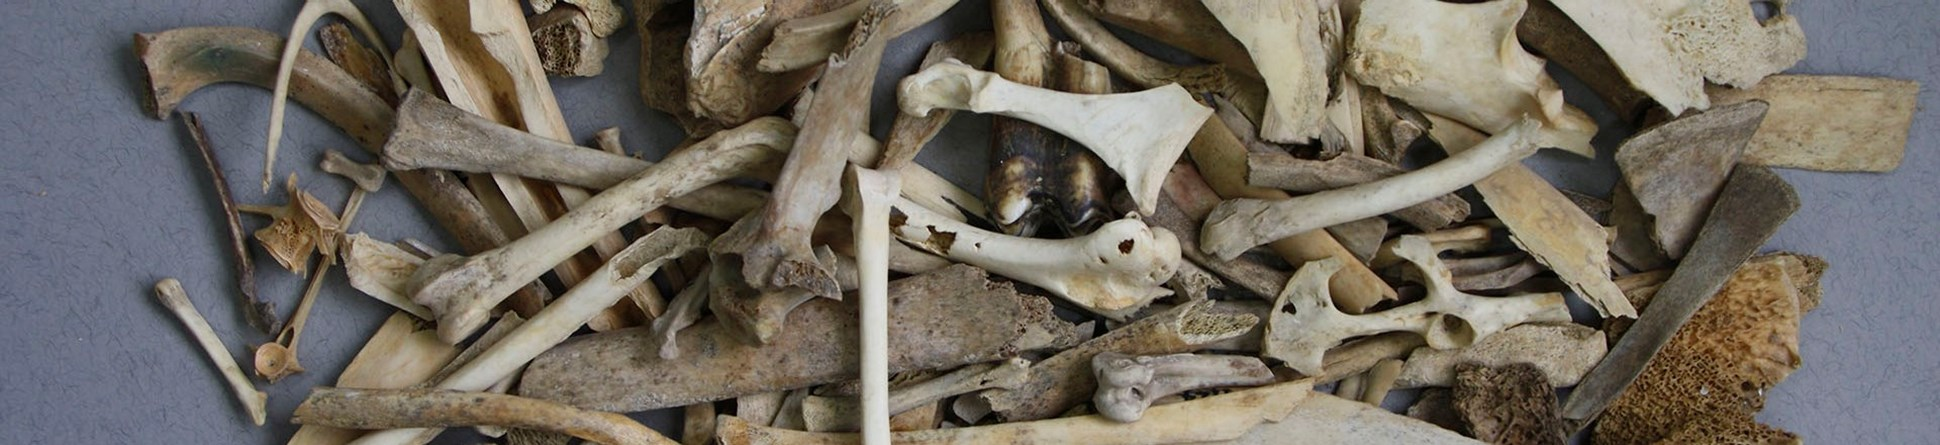 photograph of archaeological animal bones